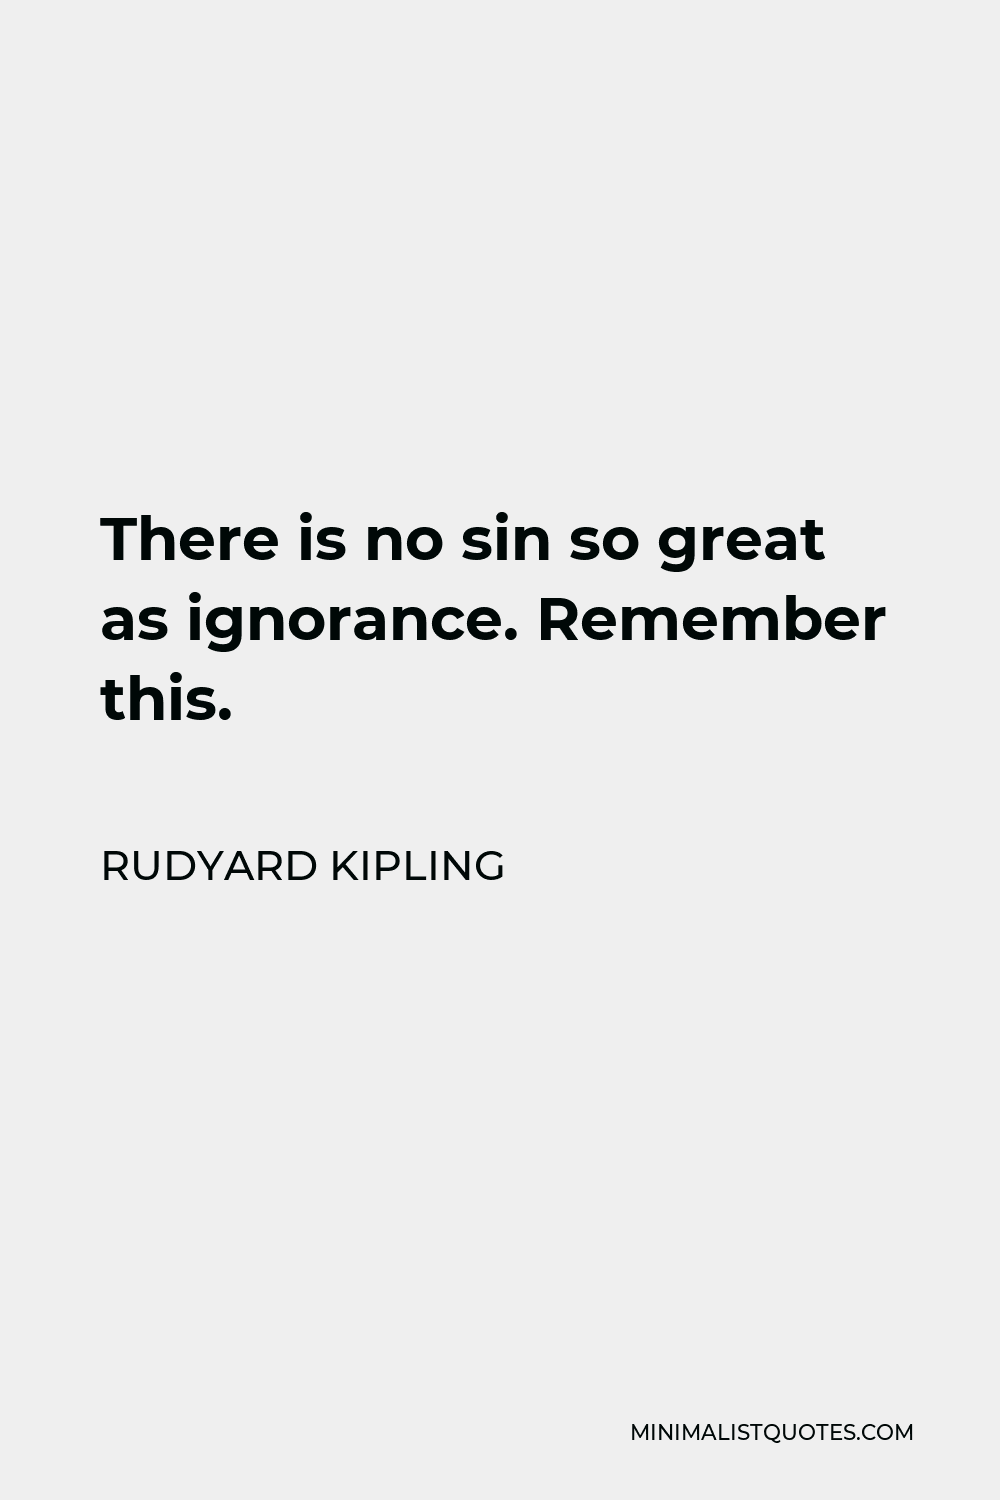 Rudyard Kipling Quote - There is no sin so great as ignorance. Remember this.